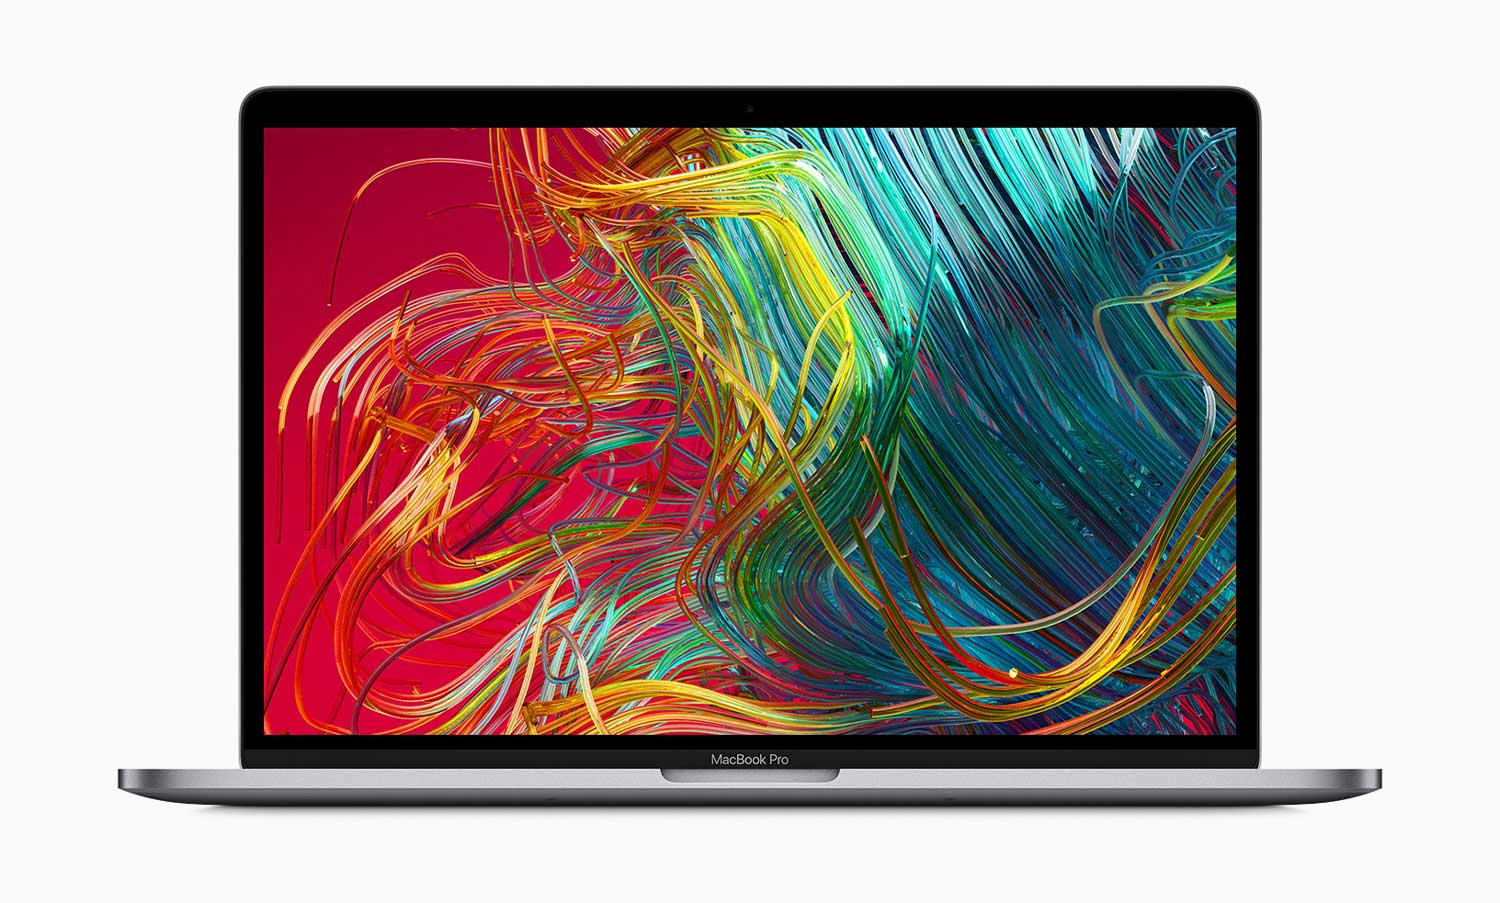 Apple MacBook Pro 8-core Retina Display